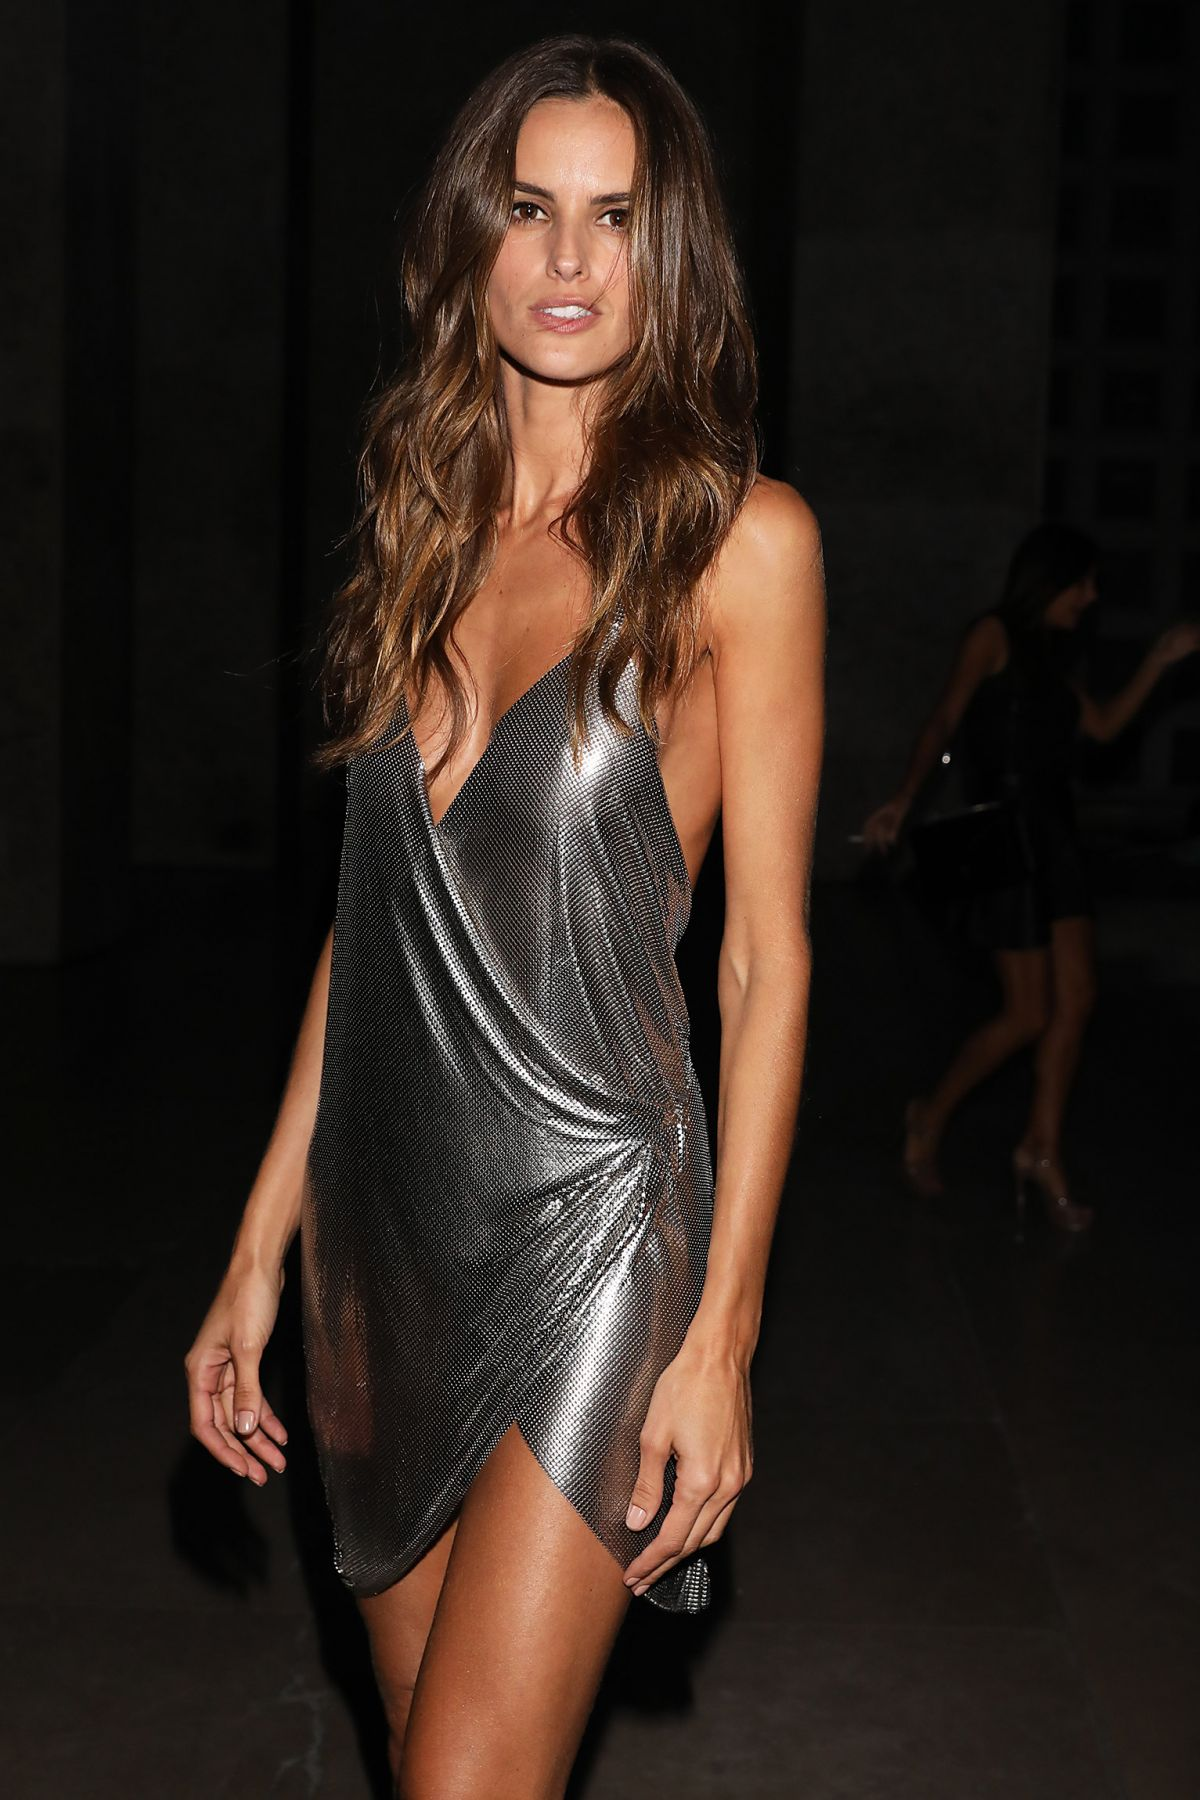 Izabel goulart brazilian actress wallpaper